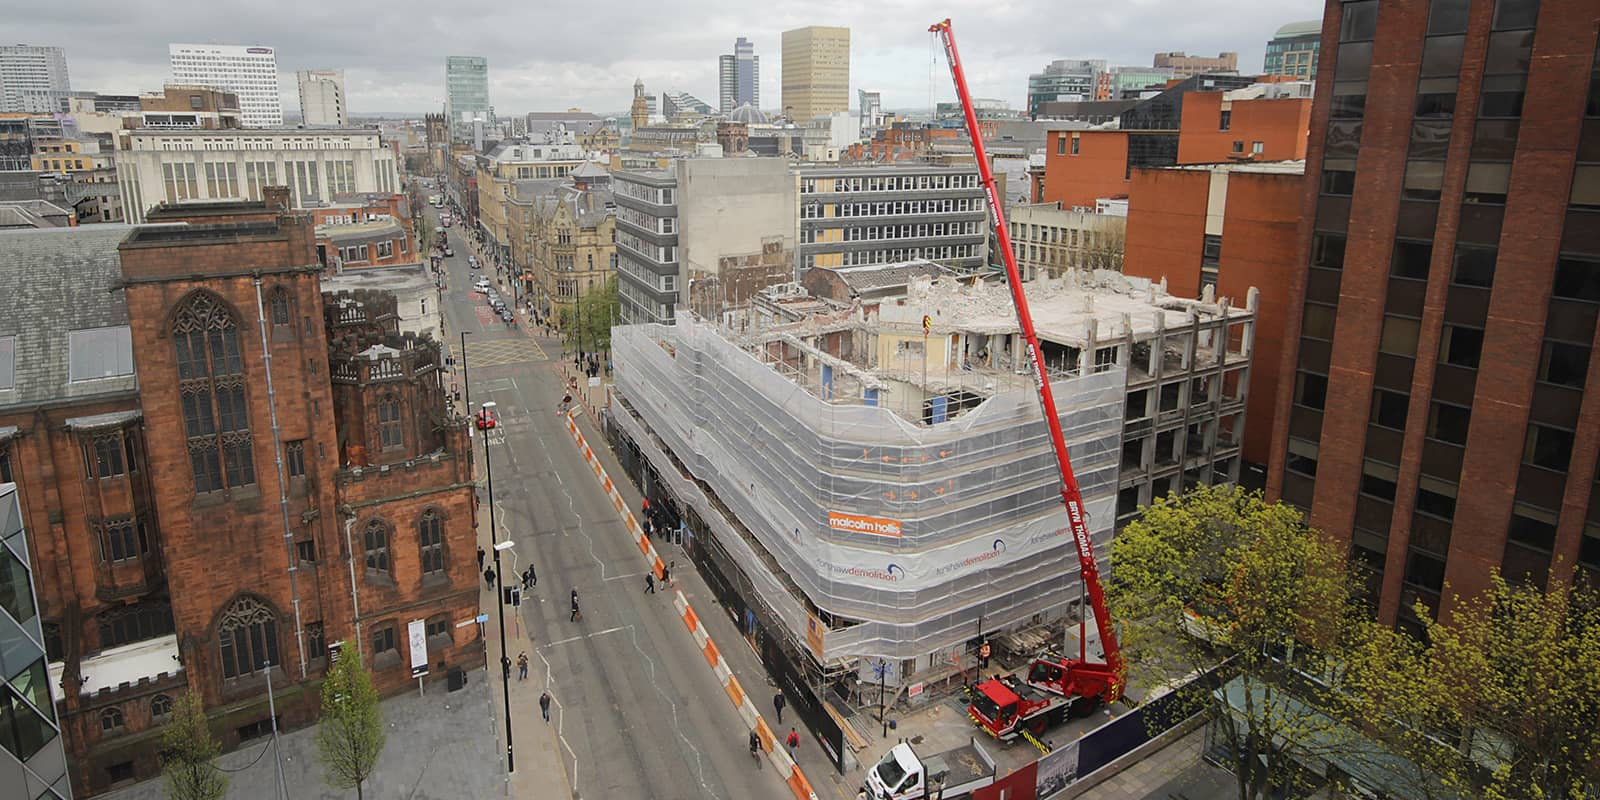 Lincoln House, Deansgate, being demolished to make way for 125 Deansgate, Manchester